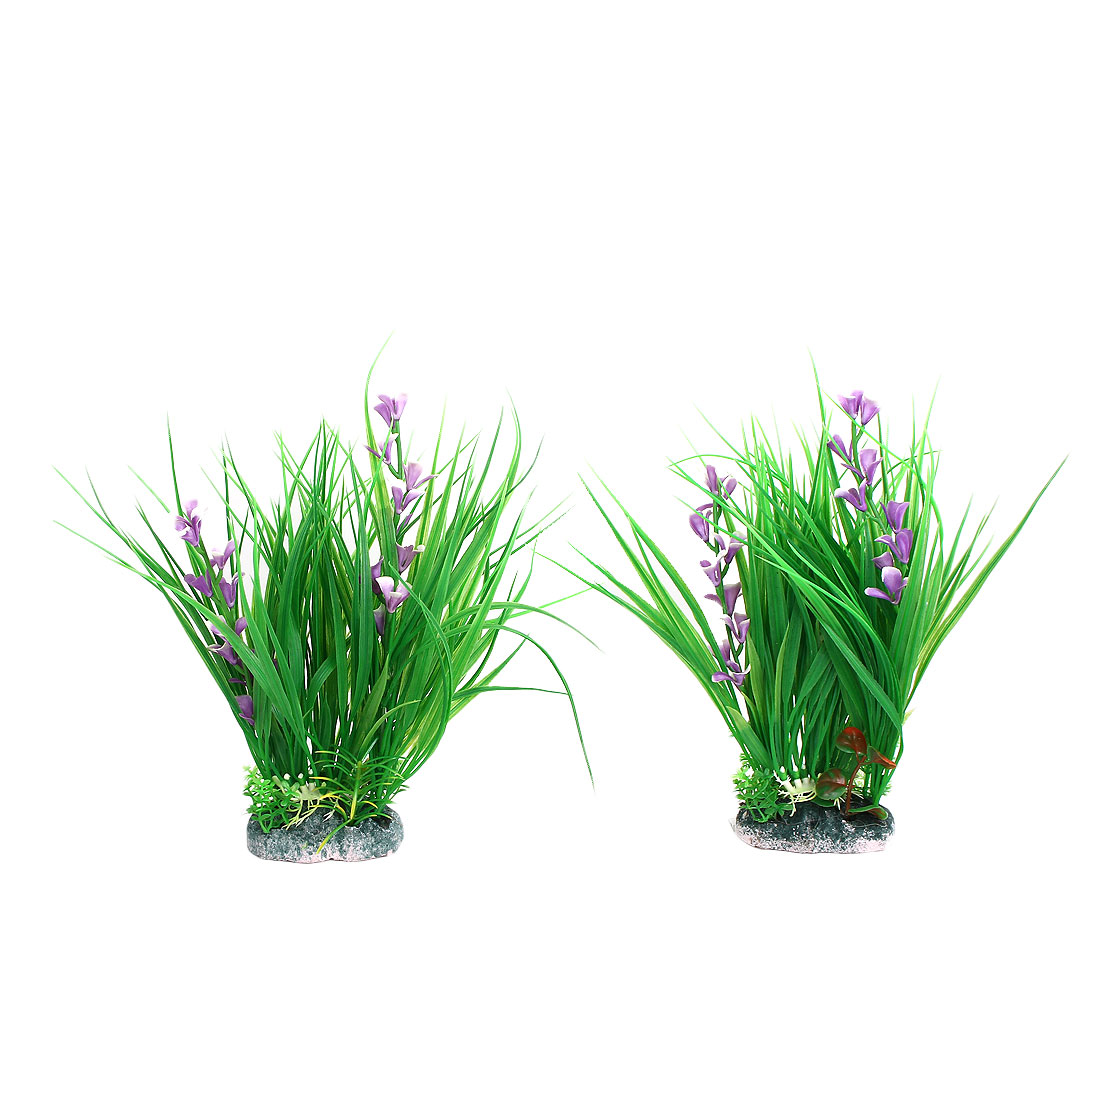 Aquarium Fish Tank Artificial Plastic Floral Plant Ornament 2 Pcs Green Purple